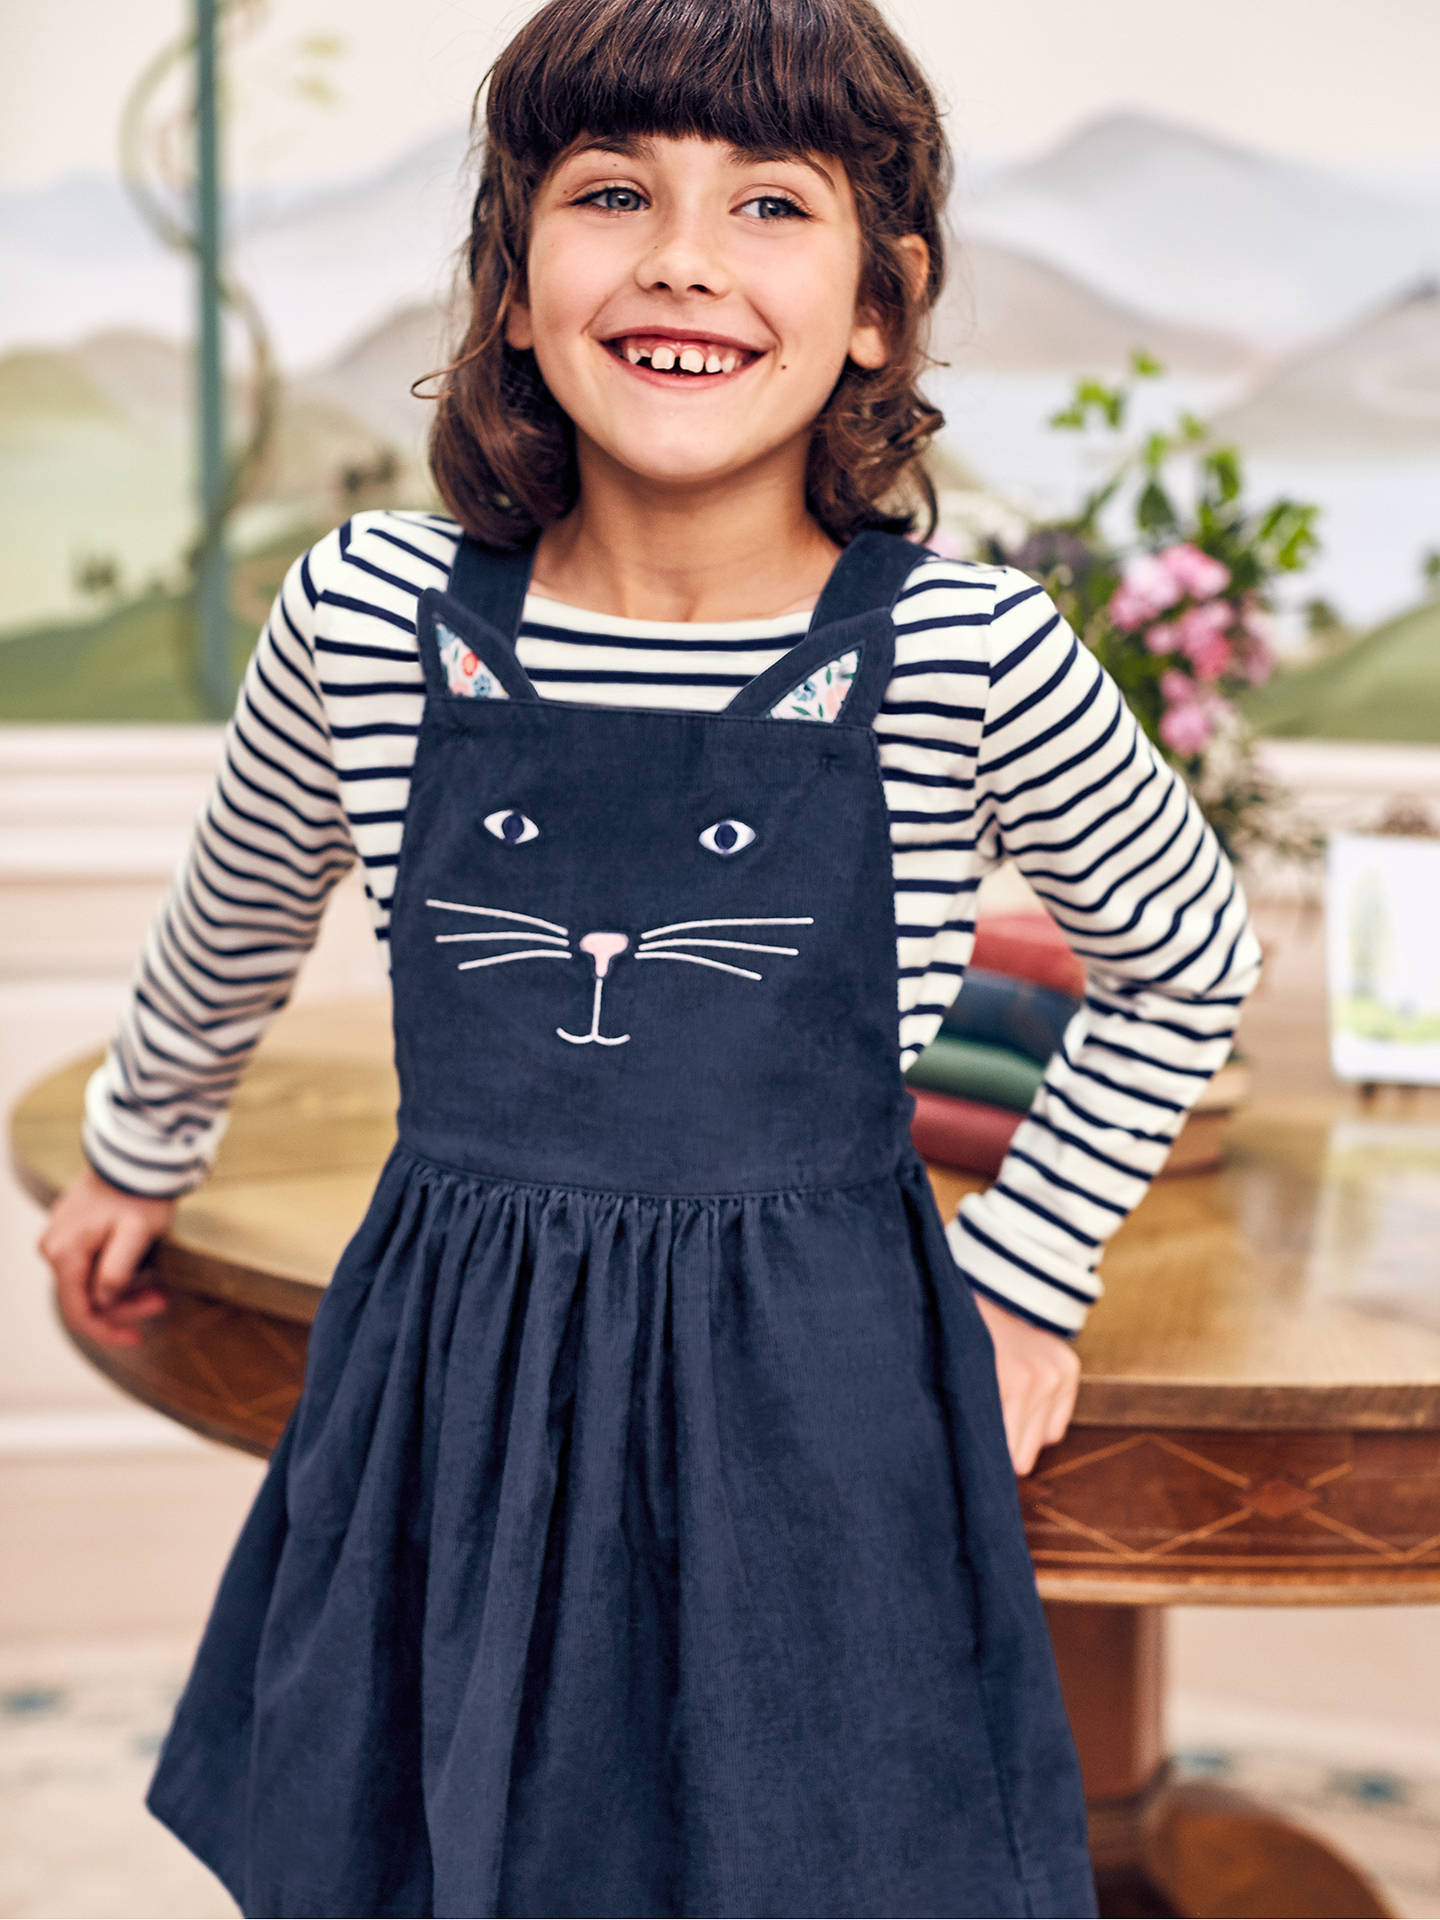 9e86c7bf6d358 ... Buy Mini Boden Girls' Cat Dungaree Dress, Blue, 2 years Online at  johnlewis ...